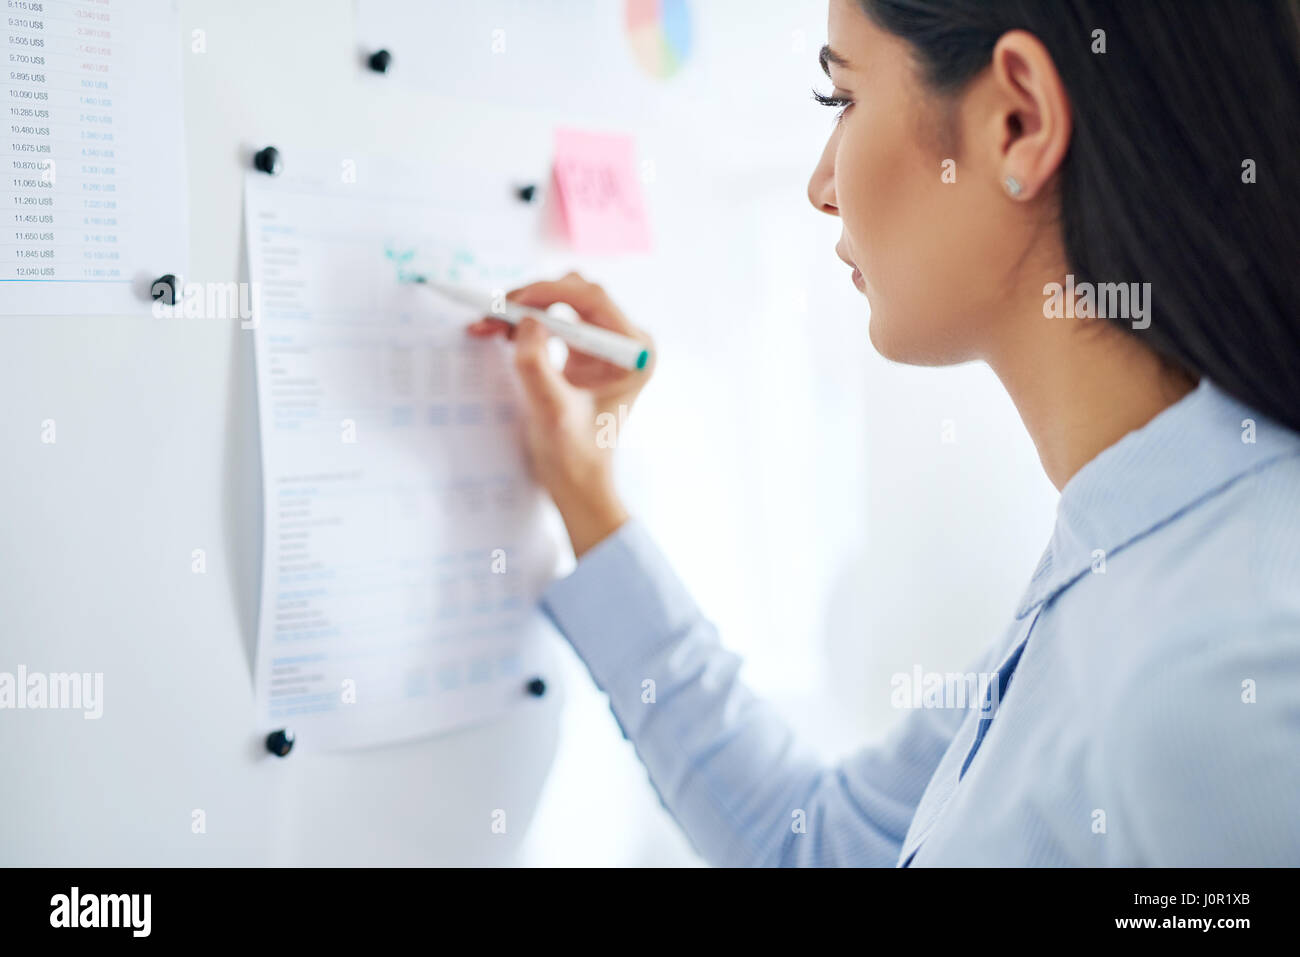 Close up rear three quarter view on single woman writing information on chart in office setting - Stock Image